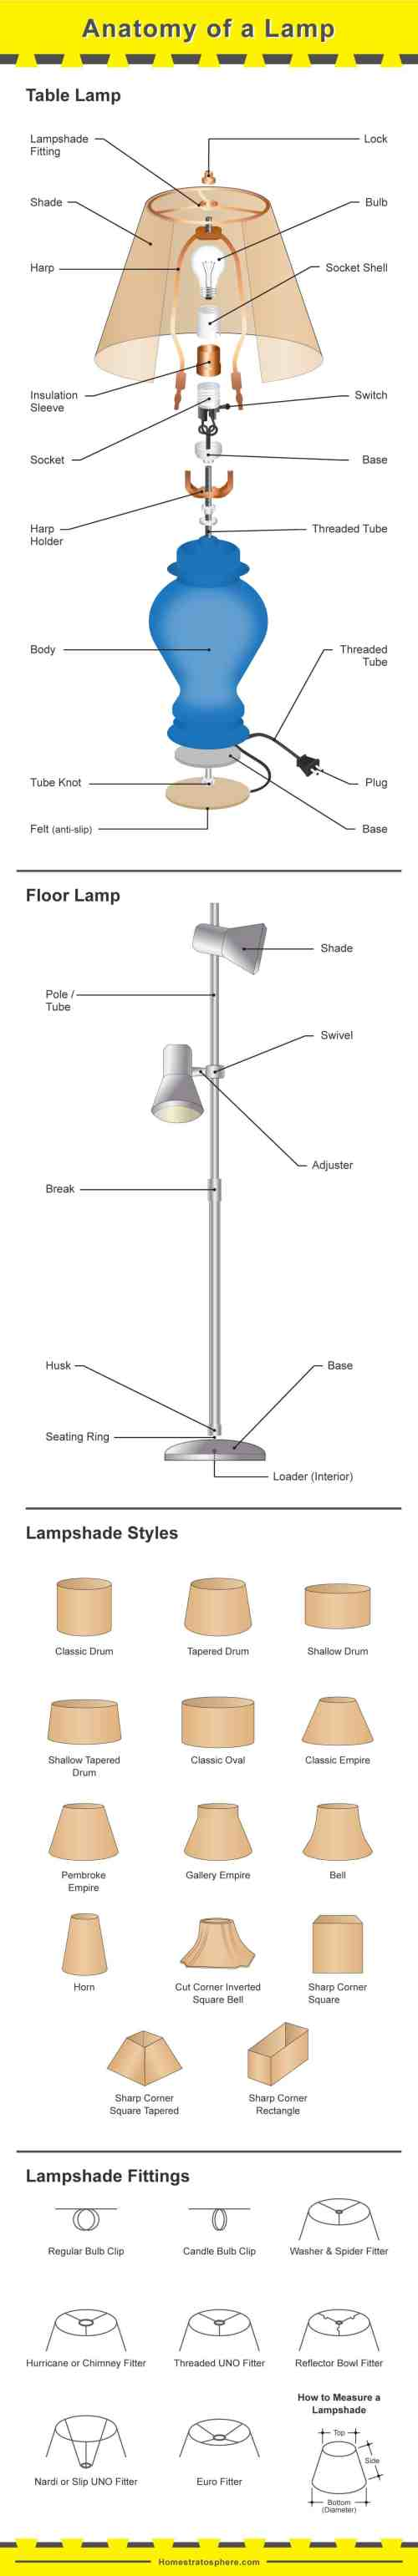 small resolution of southwestern table lamps lamp light socket parts diagram wiring diagram of parts of a lamp wiring